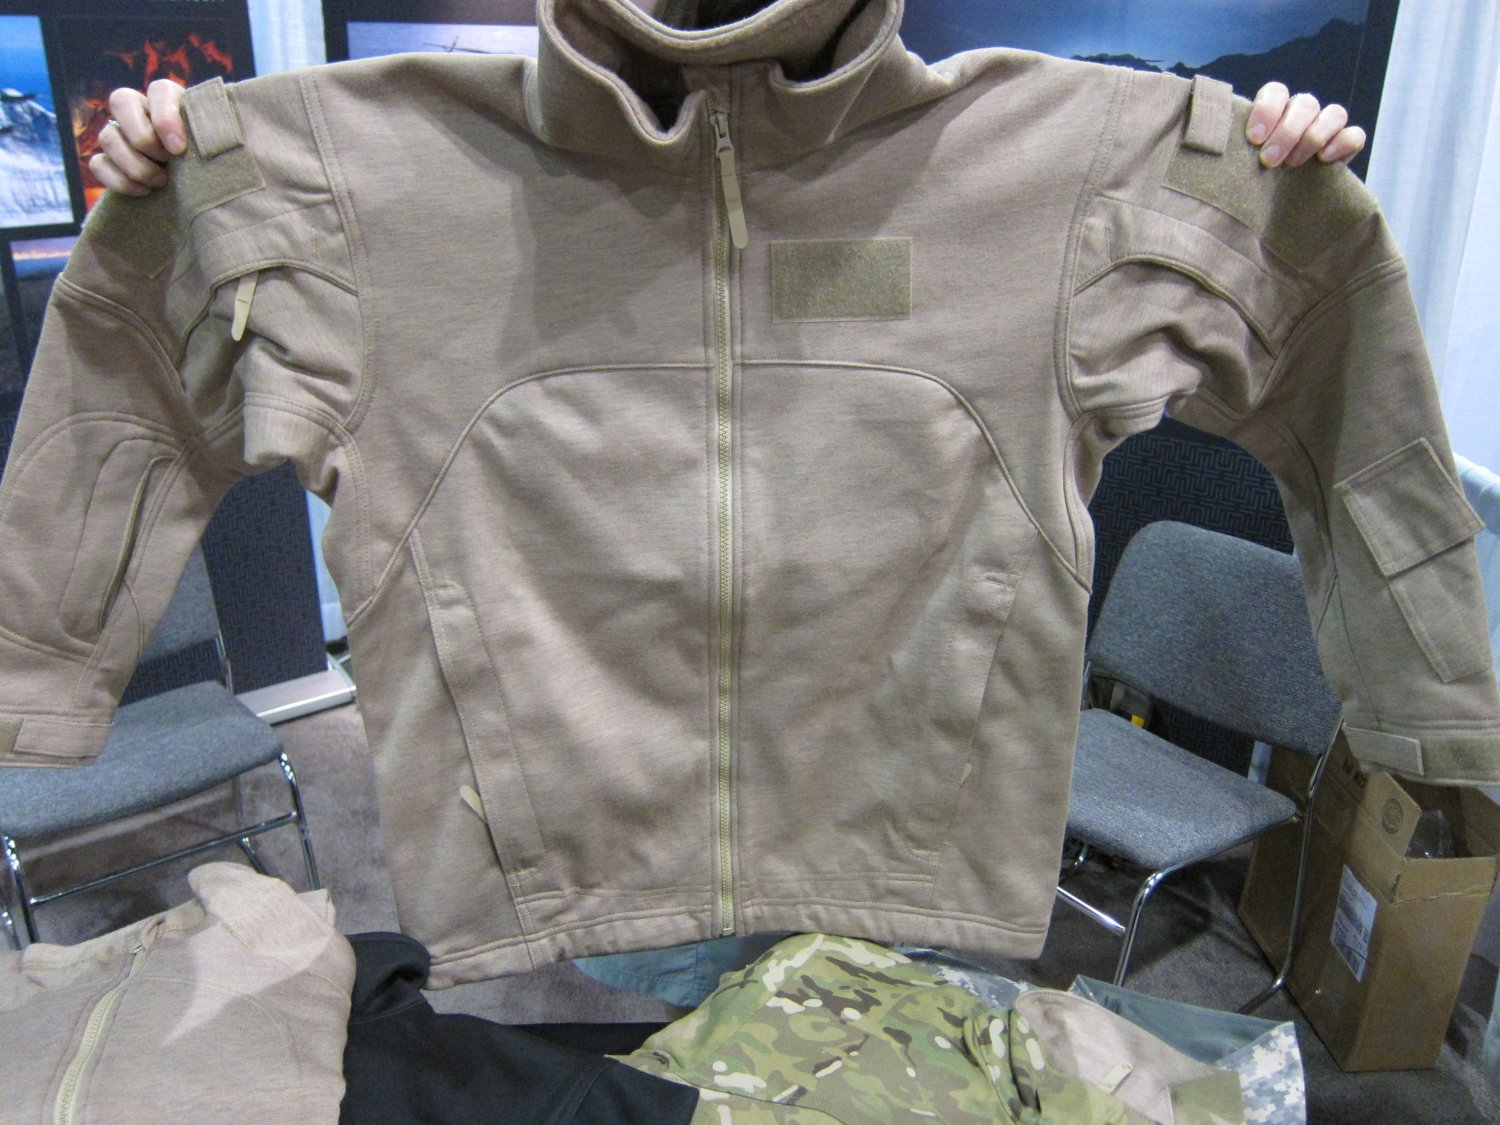 Massif Mountain Gear Flame Resistant FR Tactical Combat Clothing SOFIC 2011 11 <!  :en  >Massif Mountain Gear Flame Resistant (FR) Combat Clothing in Crye MultiCam Camouflage Pattern: High End Military Grade Tactical Jackets, Combat Shirts, and Tactical Pants for Military Special Operations Forces (SOF) and Civilian Tactical Shooters<!  :  >